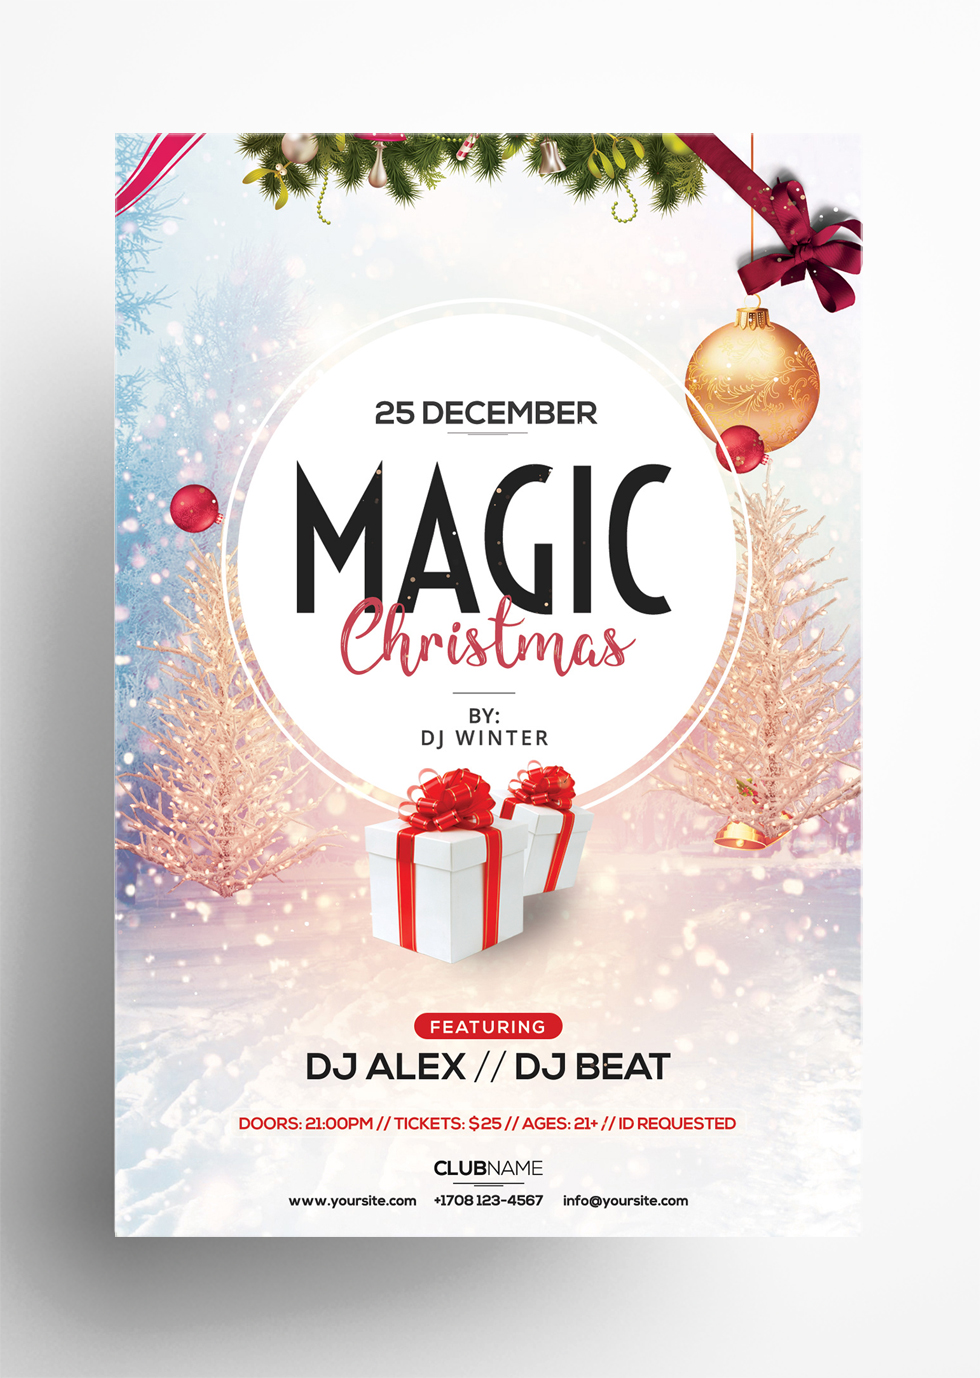 Magic Christmas - Free PSD Flyer Template